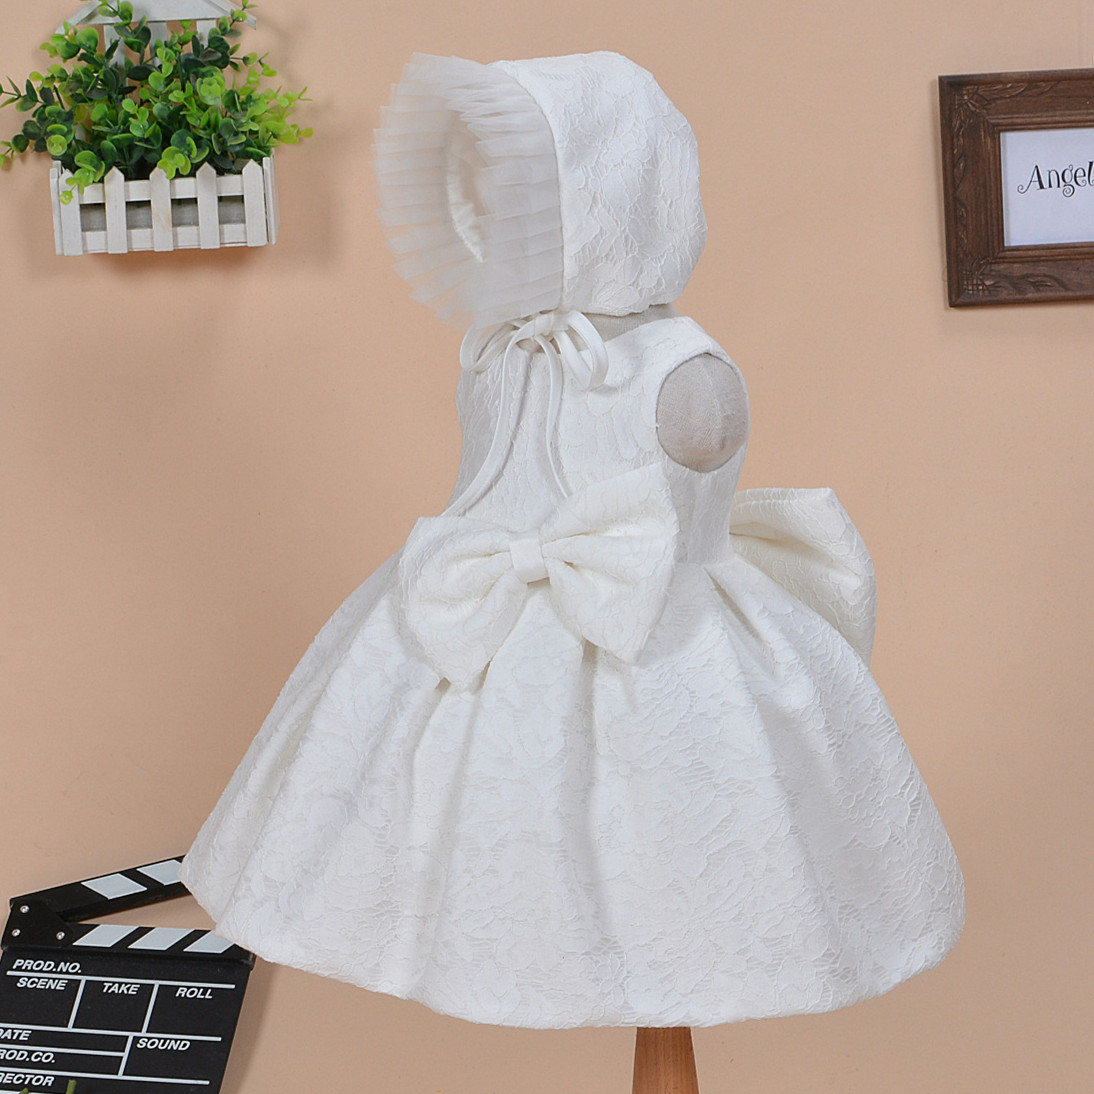 Baby Girl Baptism Dress With Hat Bow Gown Ball White Formal Baptism Clothes 2016 New Baby Girl Christening Gowns ABF164708(China (Mainland))